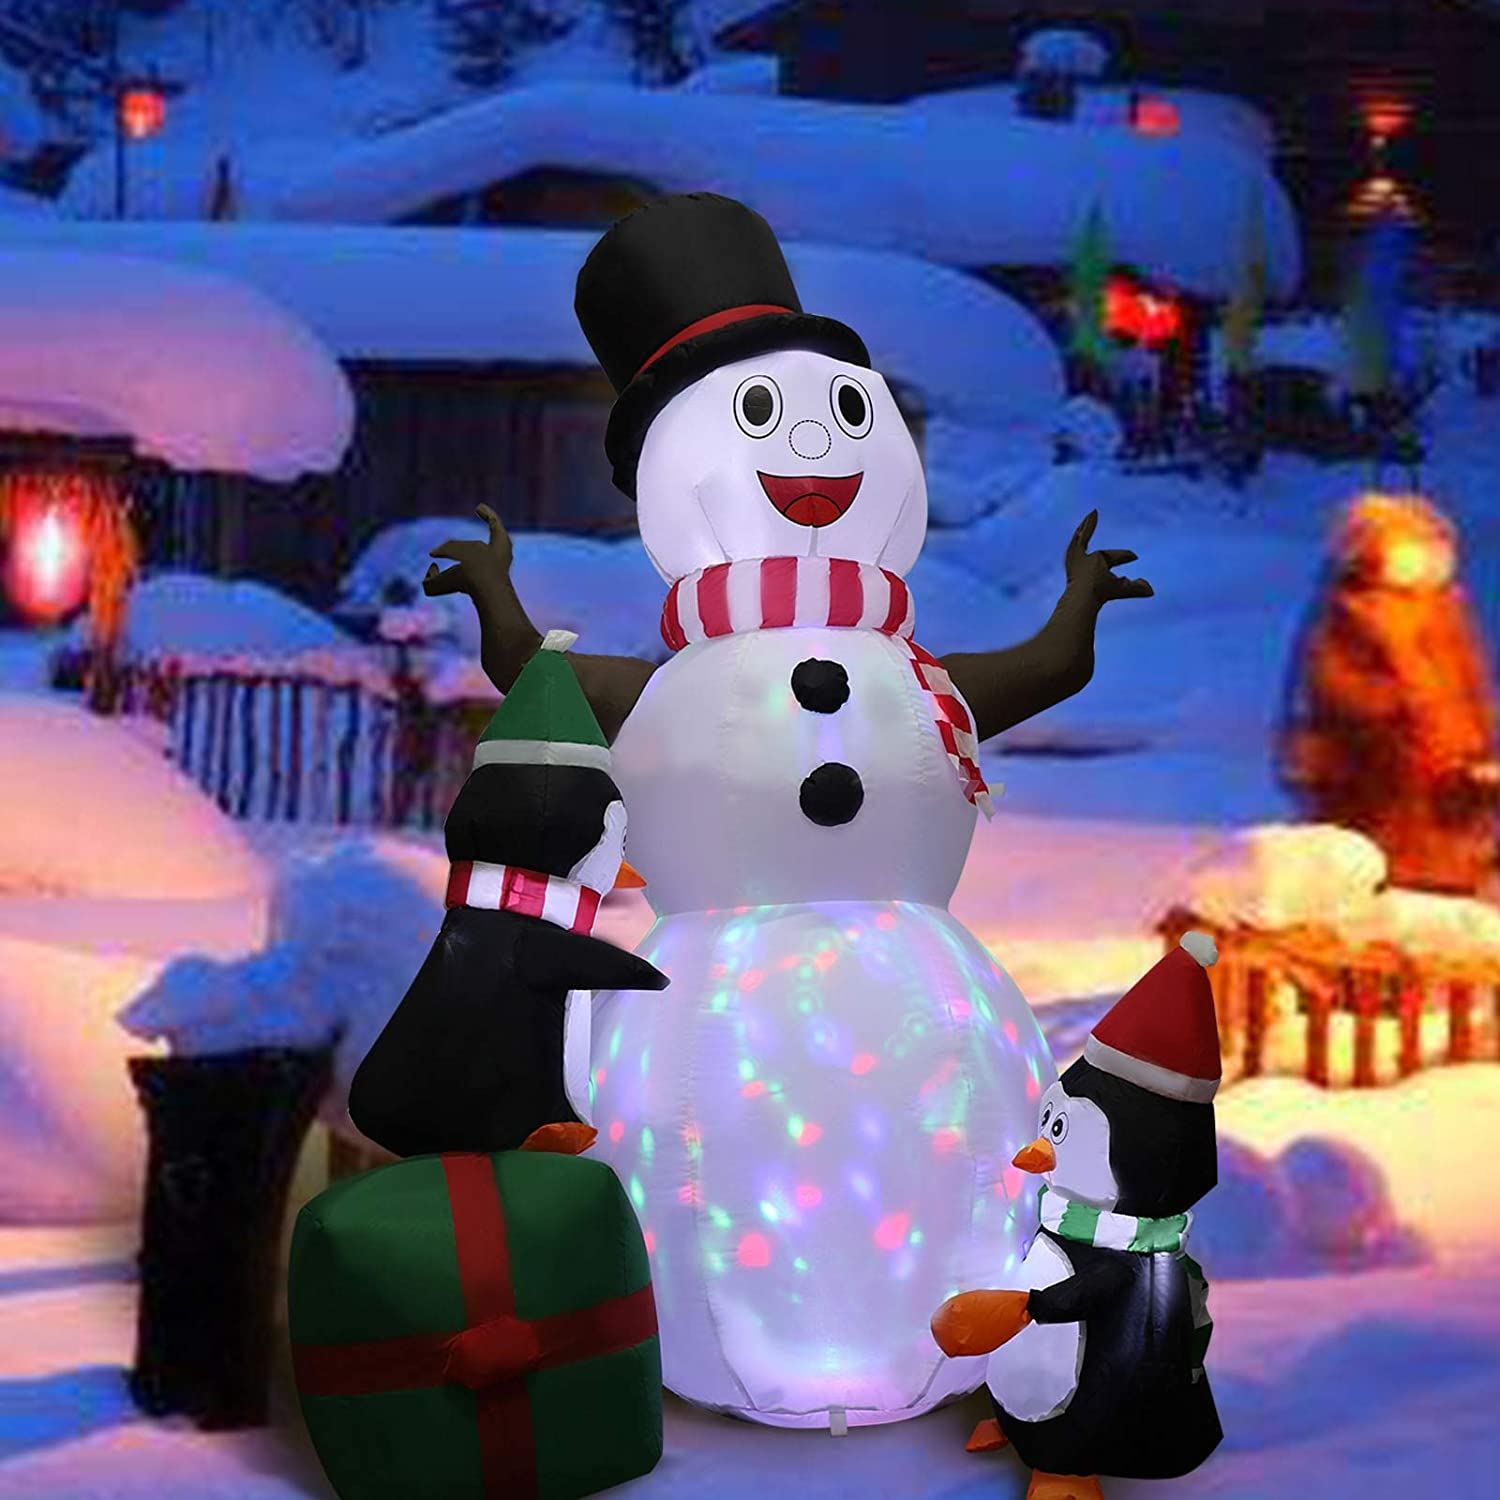 MorTime 6 FT Christmas Inflatable Snowman with Three Penguins, Blow up Airblown Lighted Smiling Cute Xmas Yard Decor with Colorful LED Lights for Christmas Outdoor Party Shopping Mall Decorations